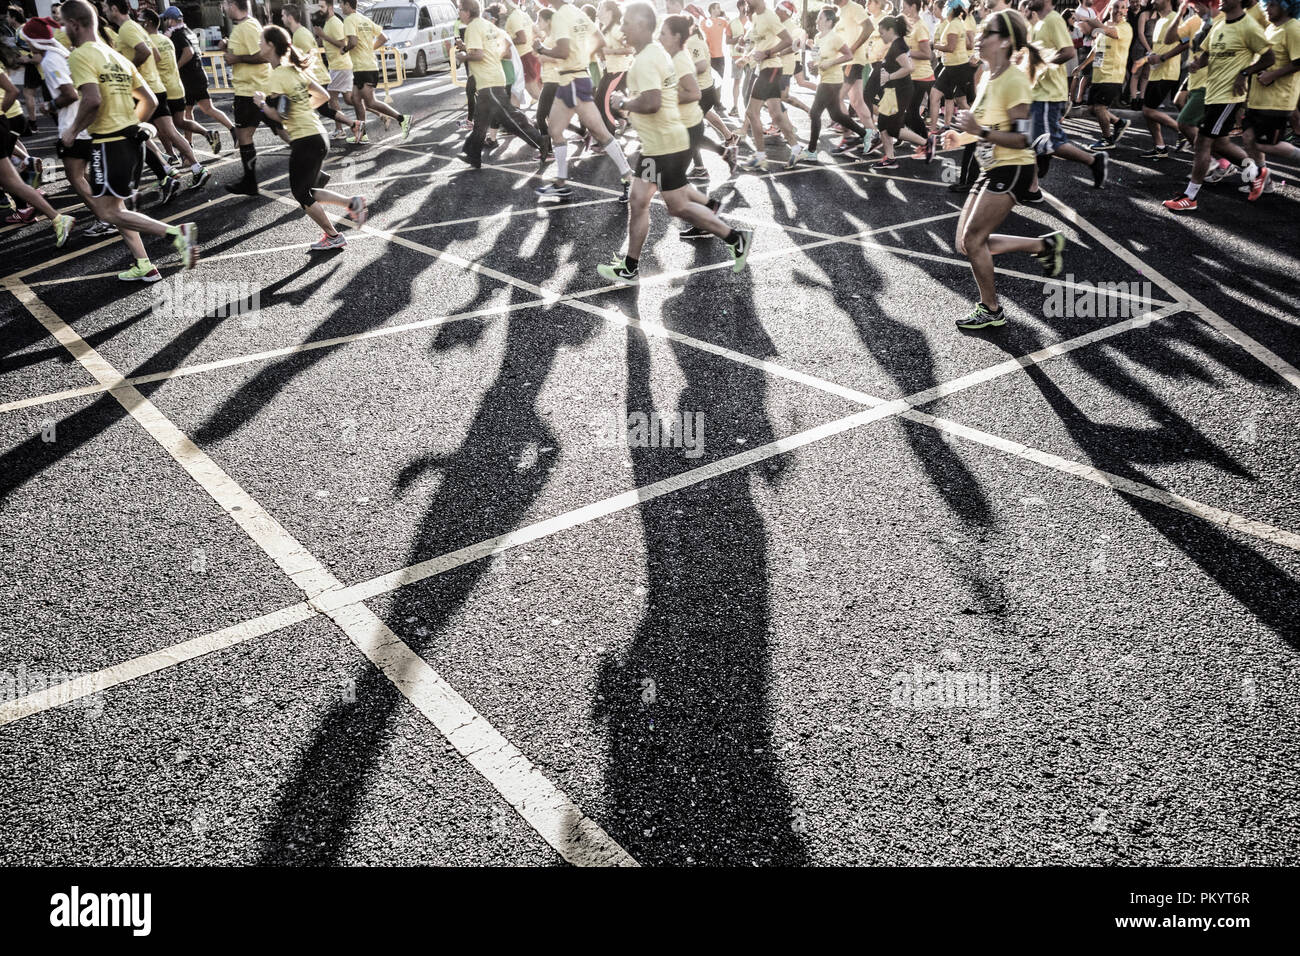 Long shadows cast by runners at city fun run event. - Stock Image